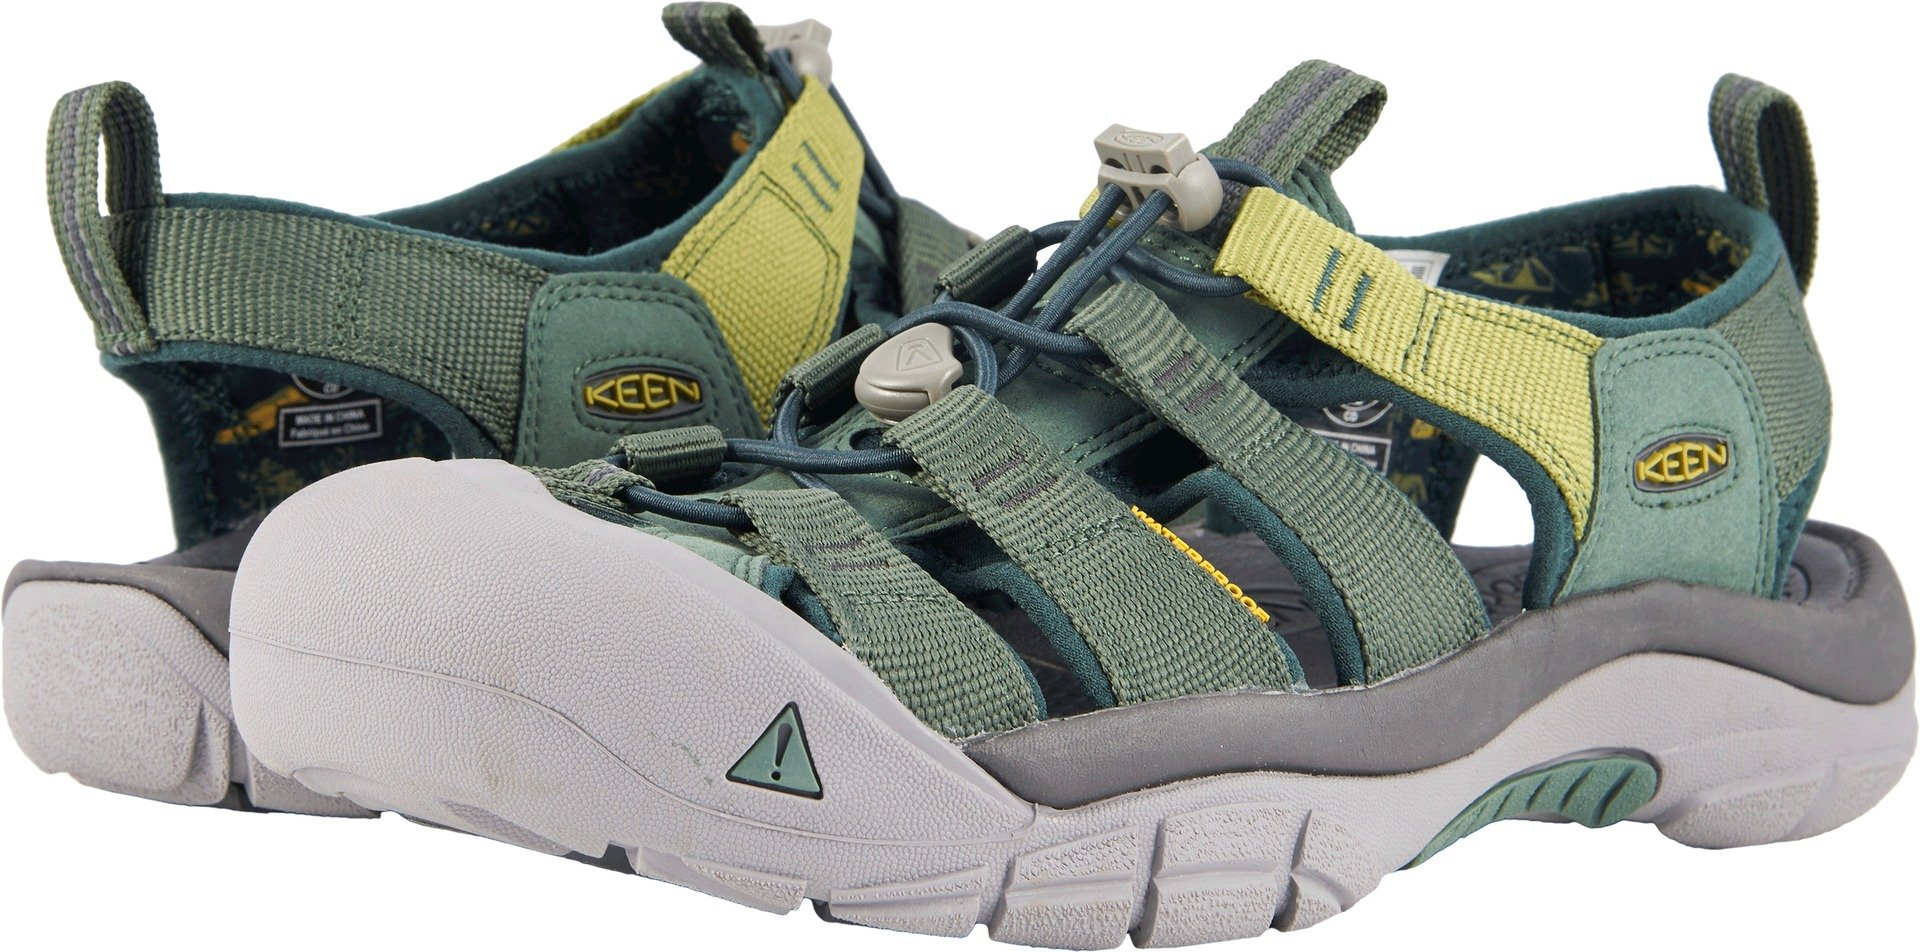 KEEN Men's Newport Hydro-M Sandal, Duck Green/Darkest Spruce, 11 M US